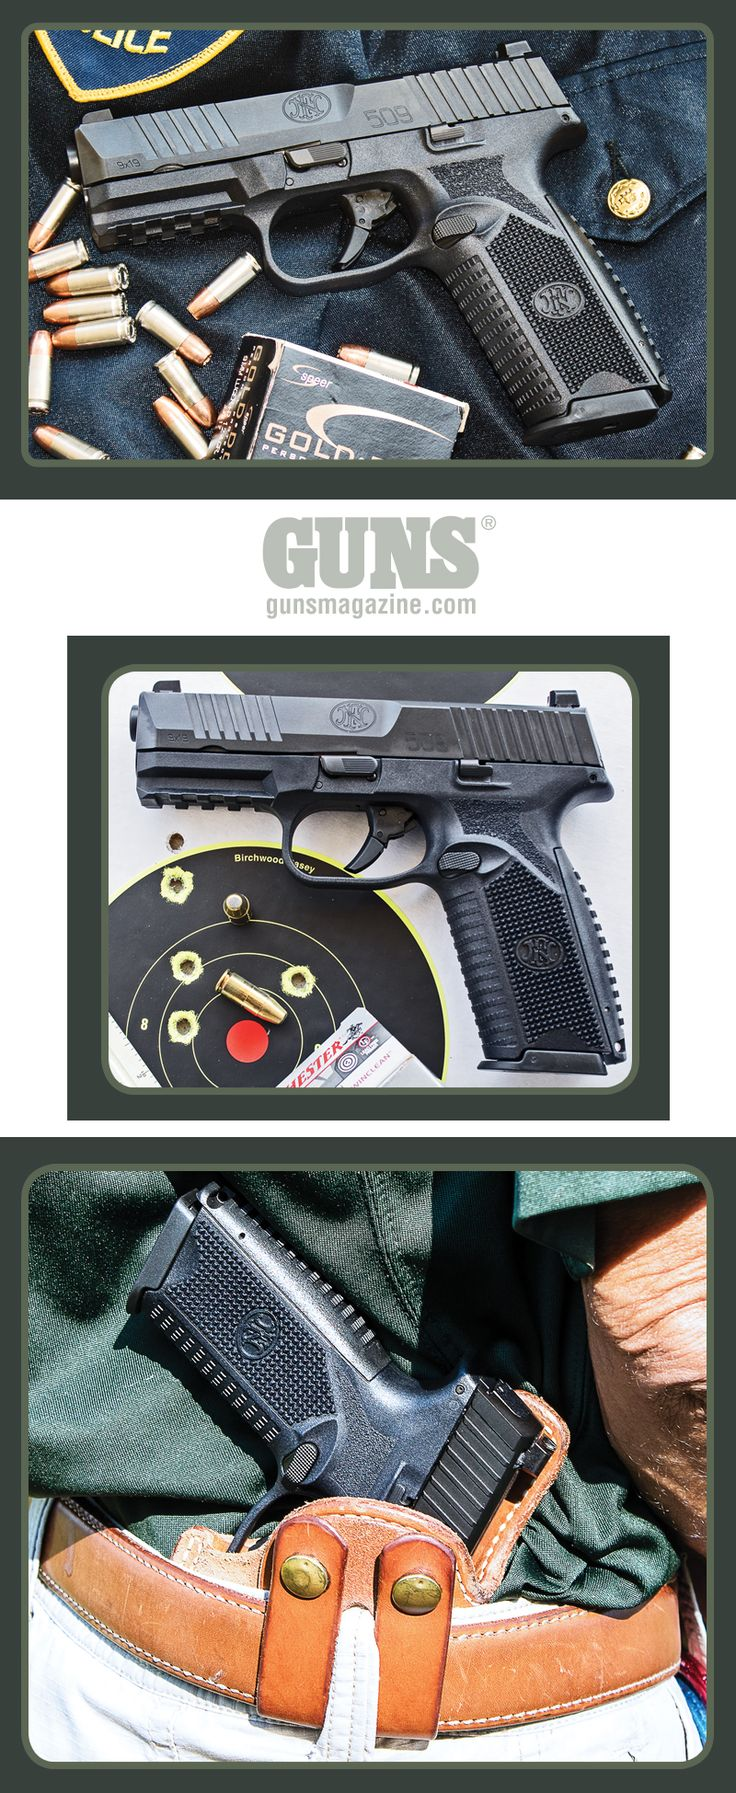 Ready To Serve: The FN 509 | By Massad Ayoob | Not Just Another Striker-Fired 9mm Service Pistol! | The pistol's thoughtful layout of controls provides the ease of use a duty or self-defense gun requires. | © GUNS Magazine 2018